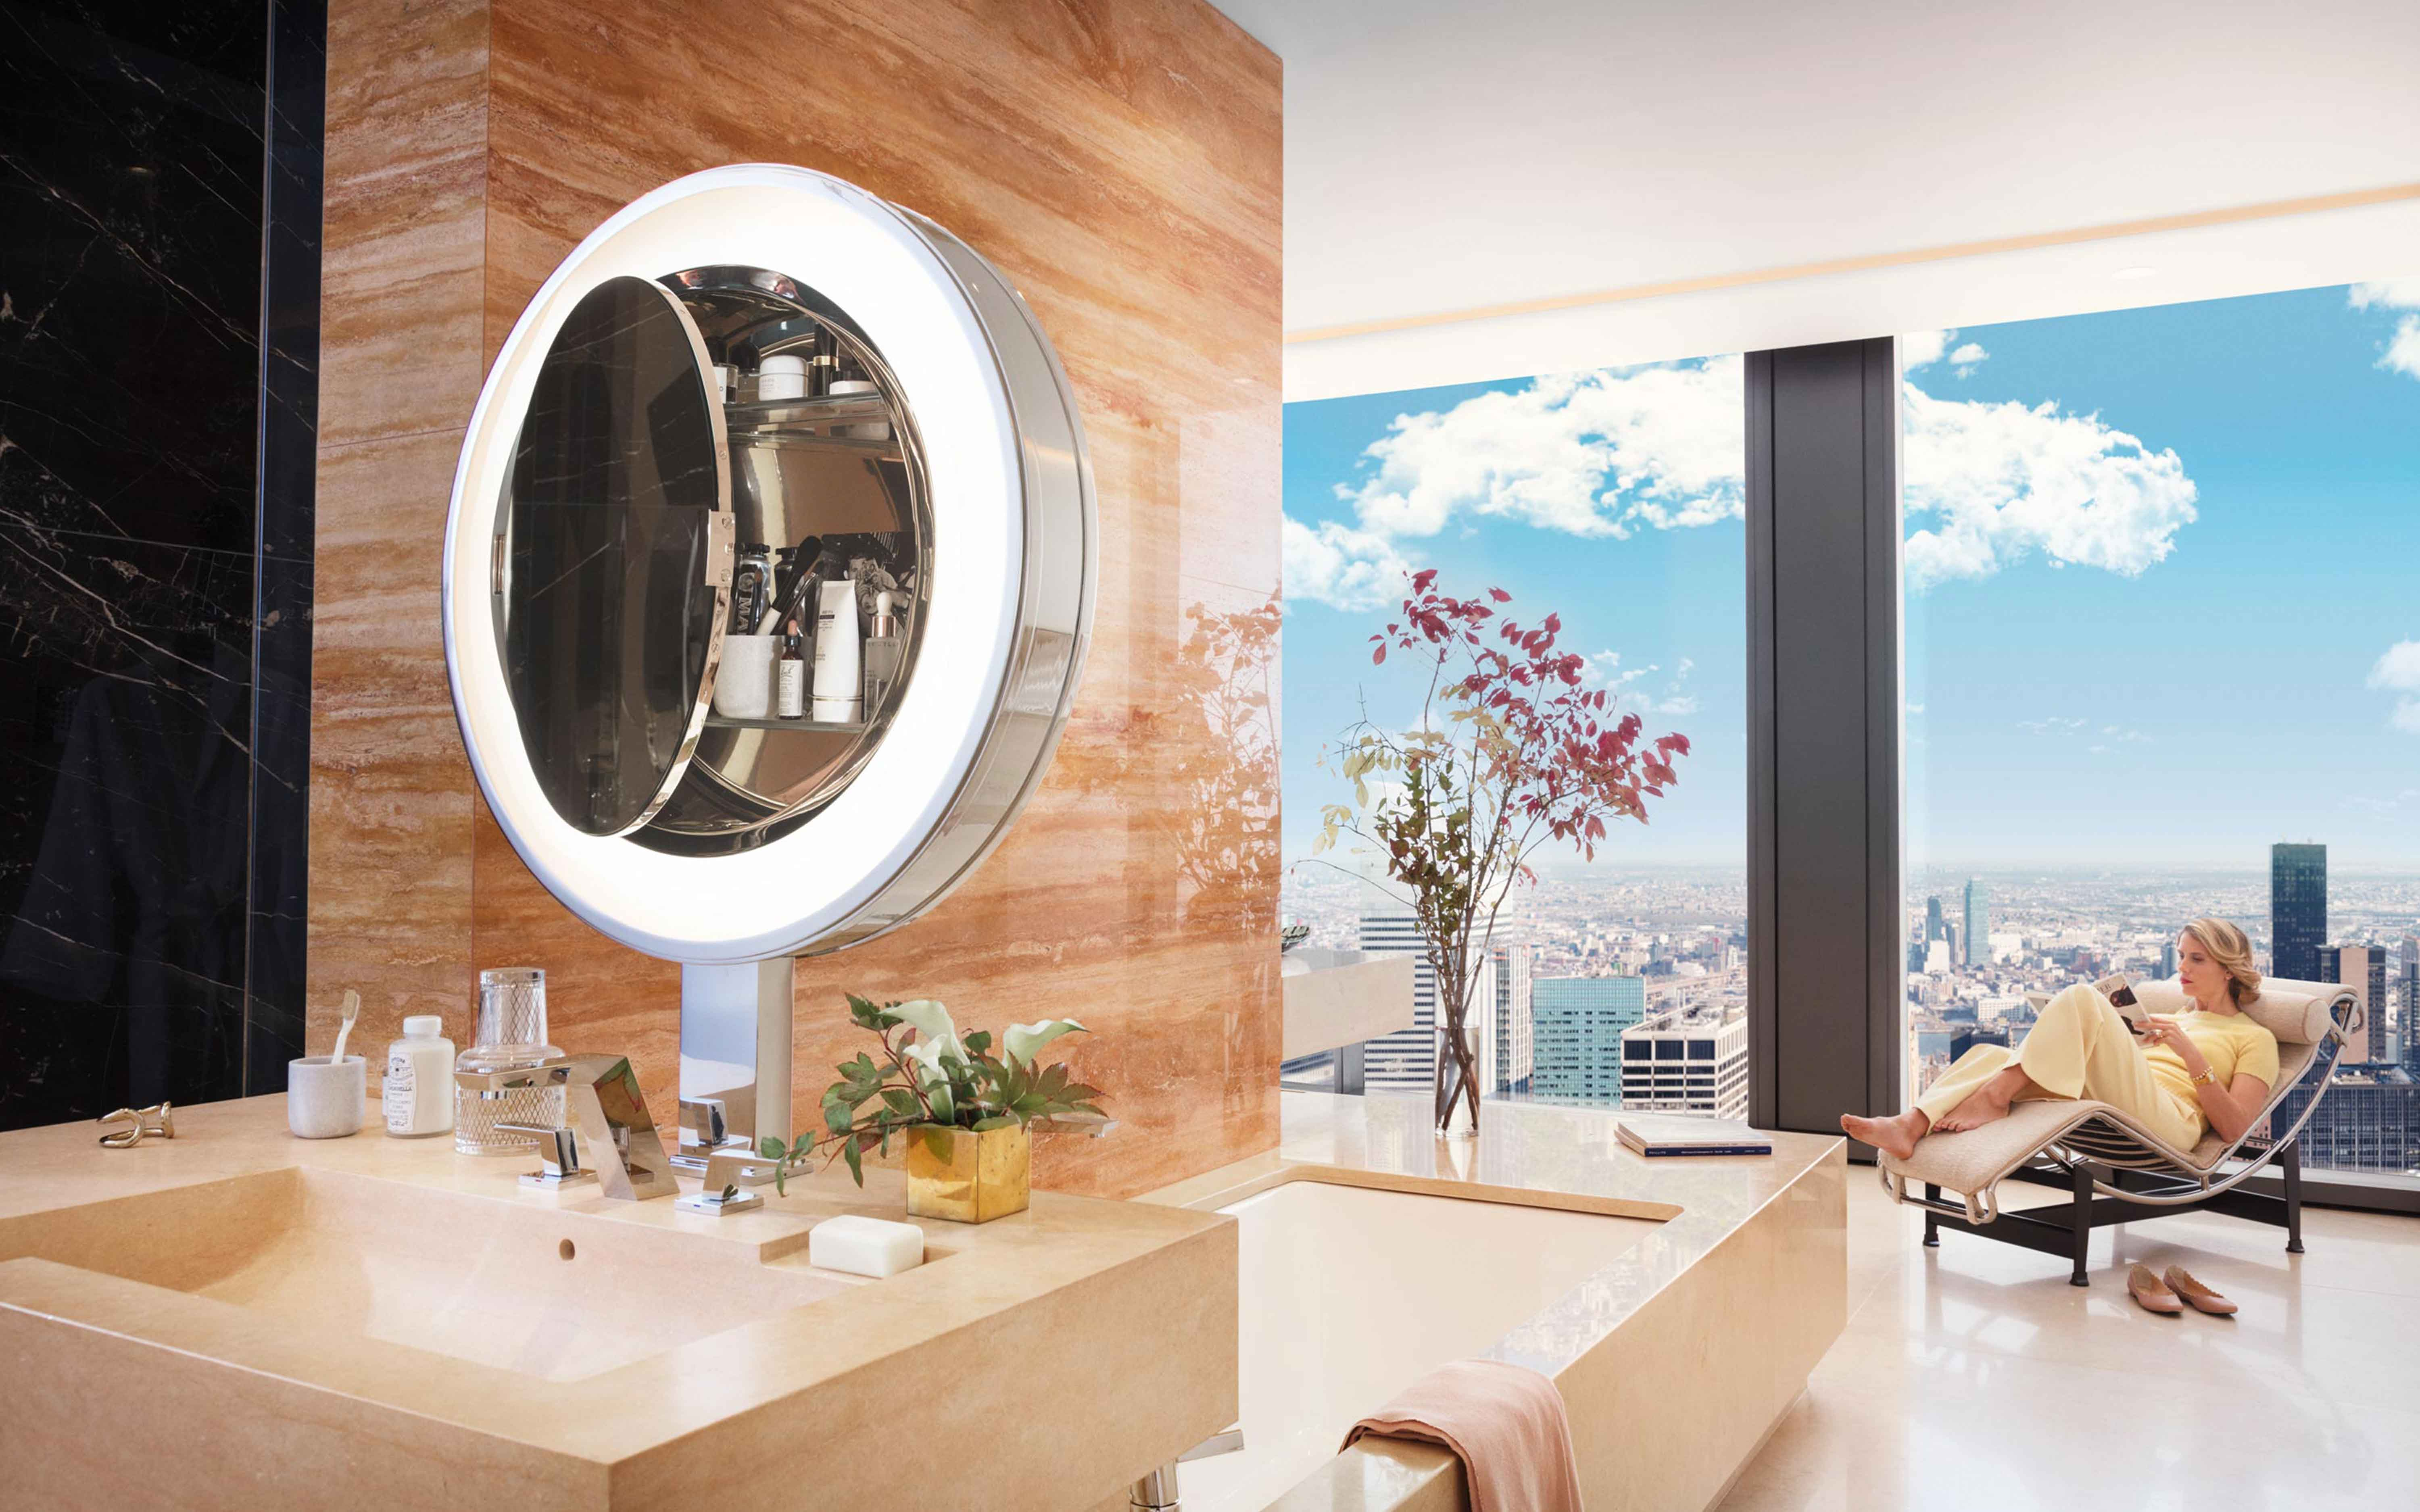 53W53 | Luxury Midtown Manhattan Condos by Jean Nouvel on